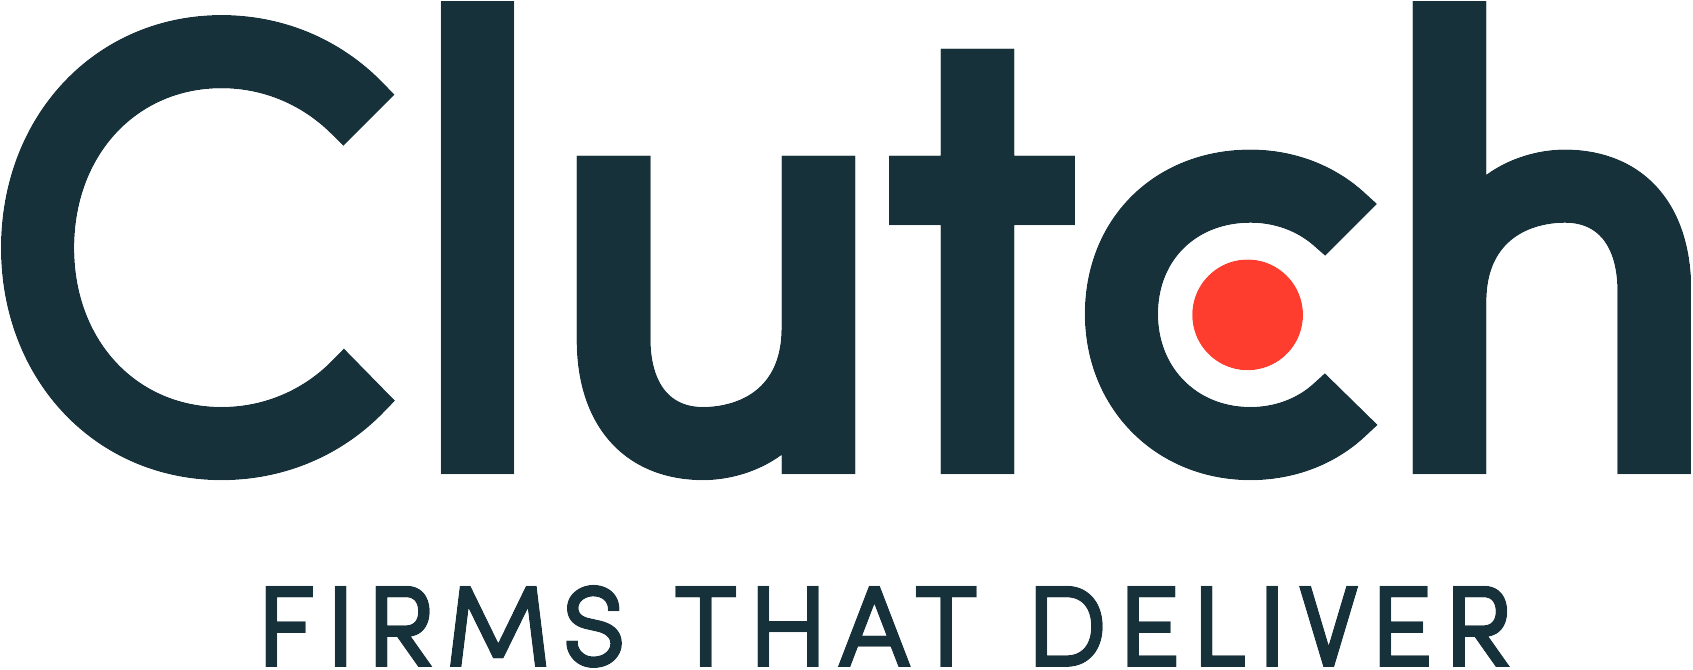 Clutch.co Logo